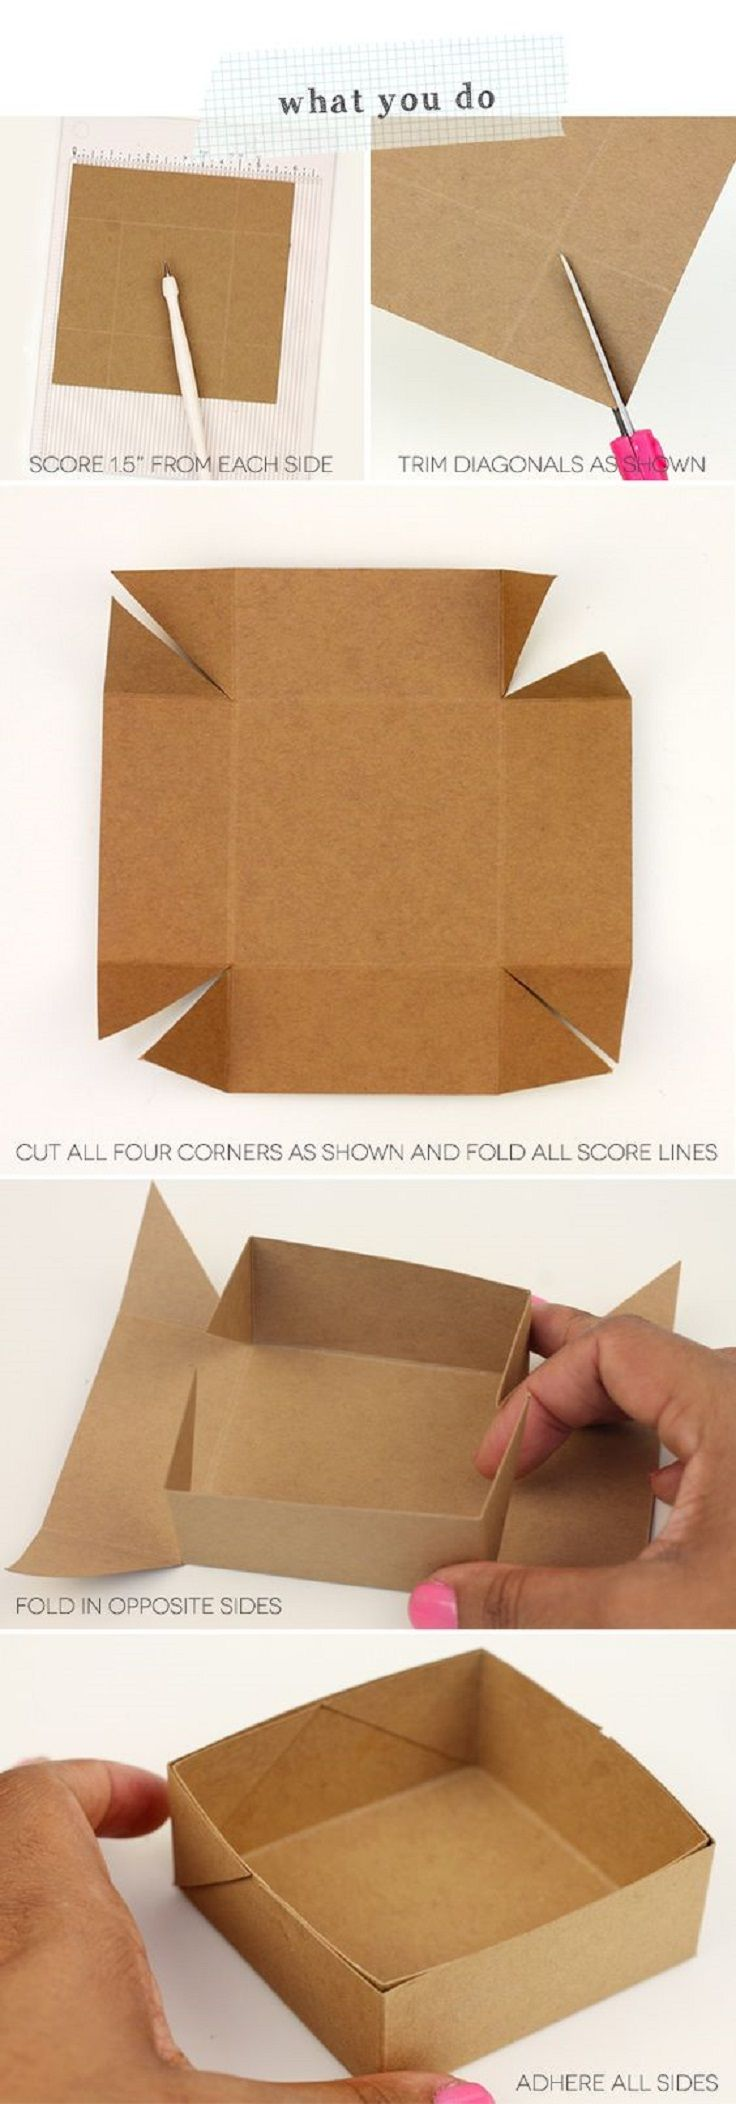 DIY Paper Box Tutorial – Simplest Box Ever - 14 Useful yet Unique DIY Gift Wrapping Tutorials You Should Learn